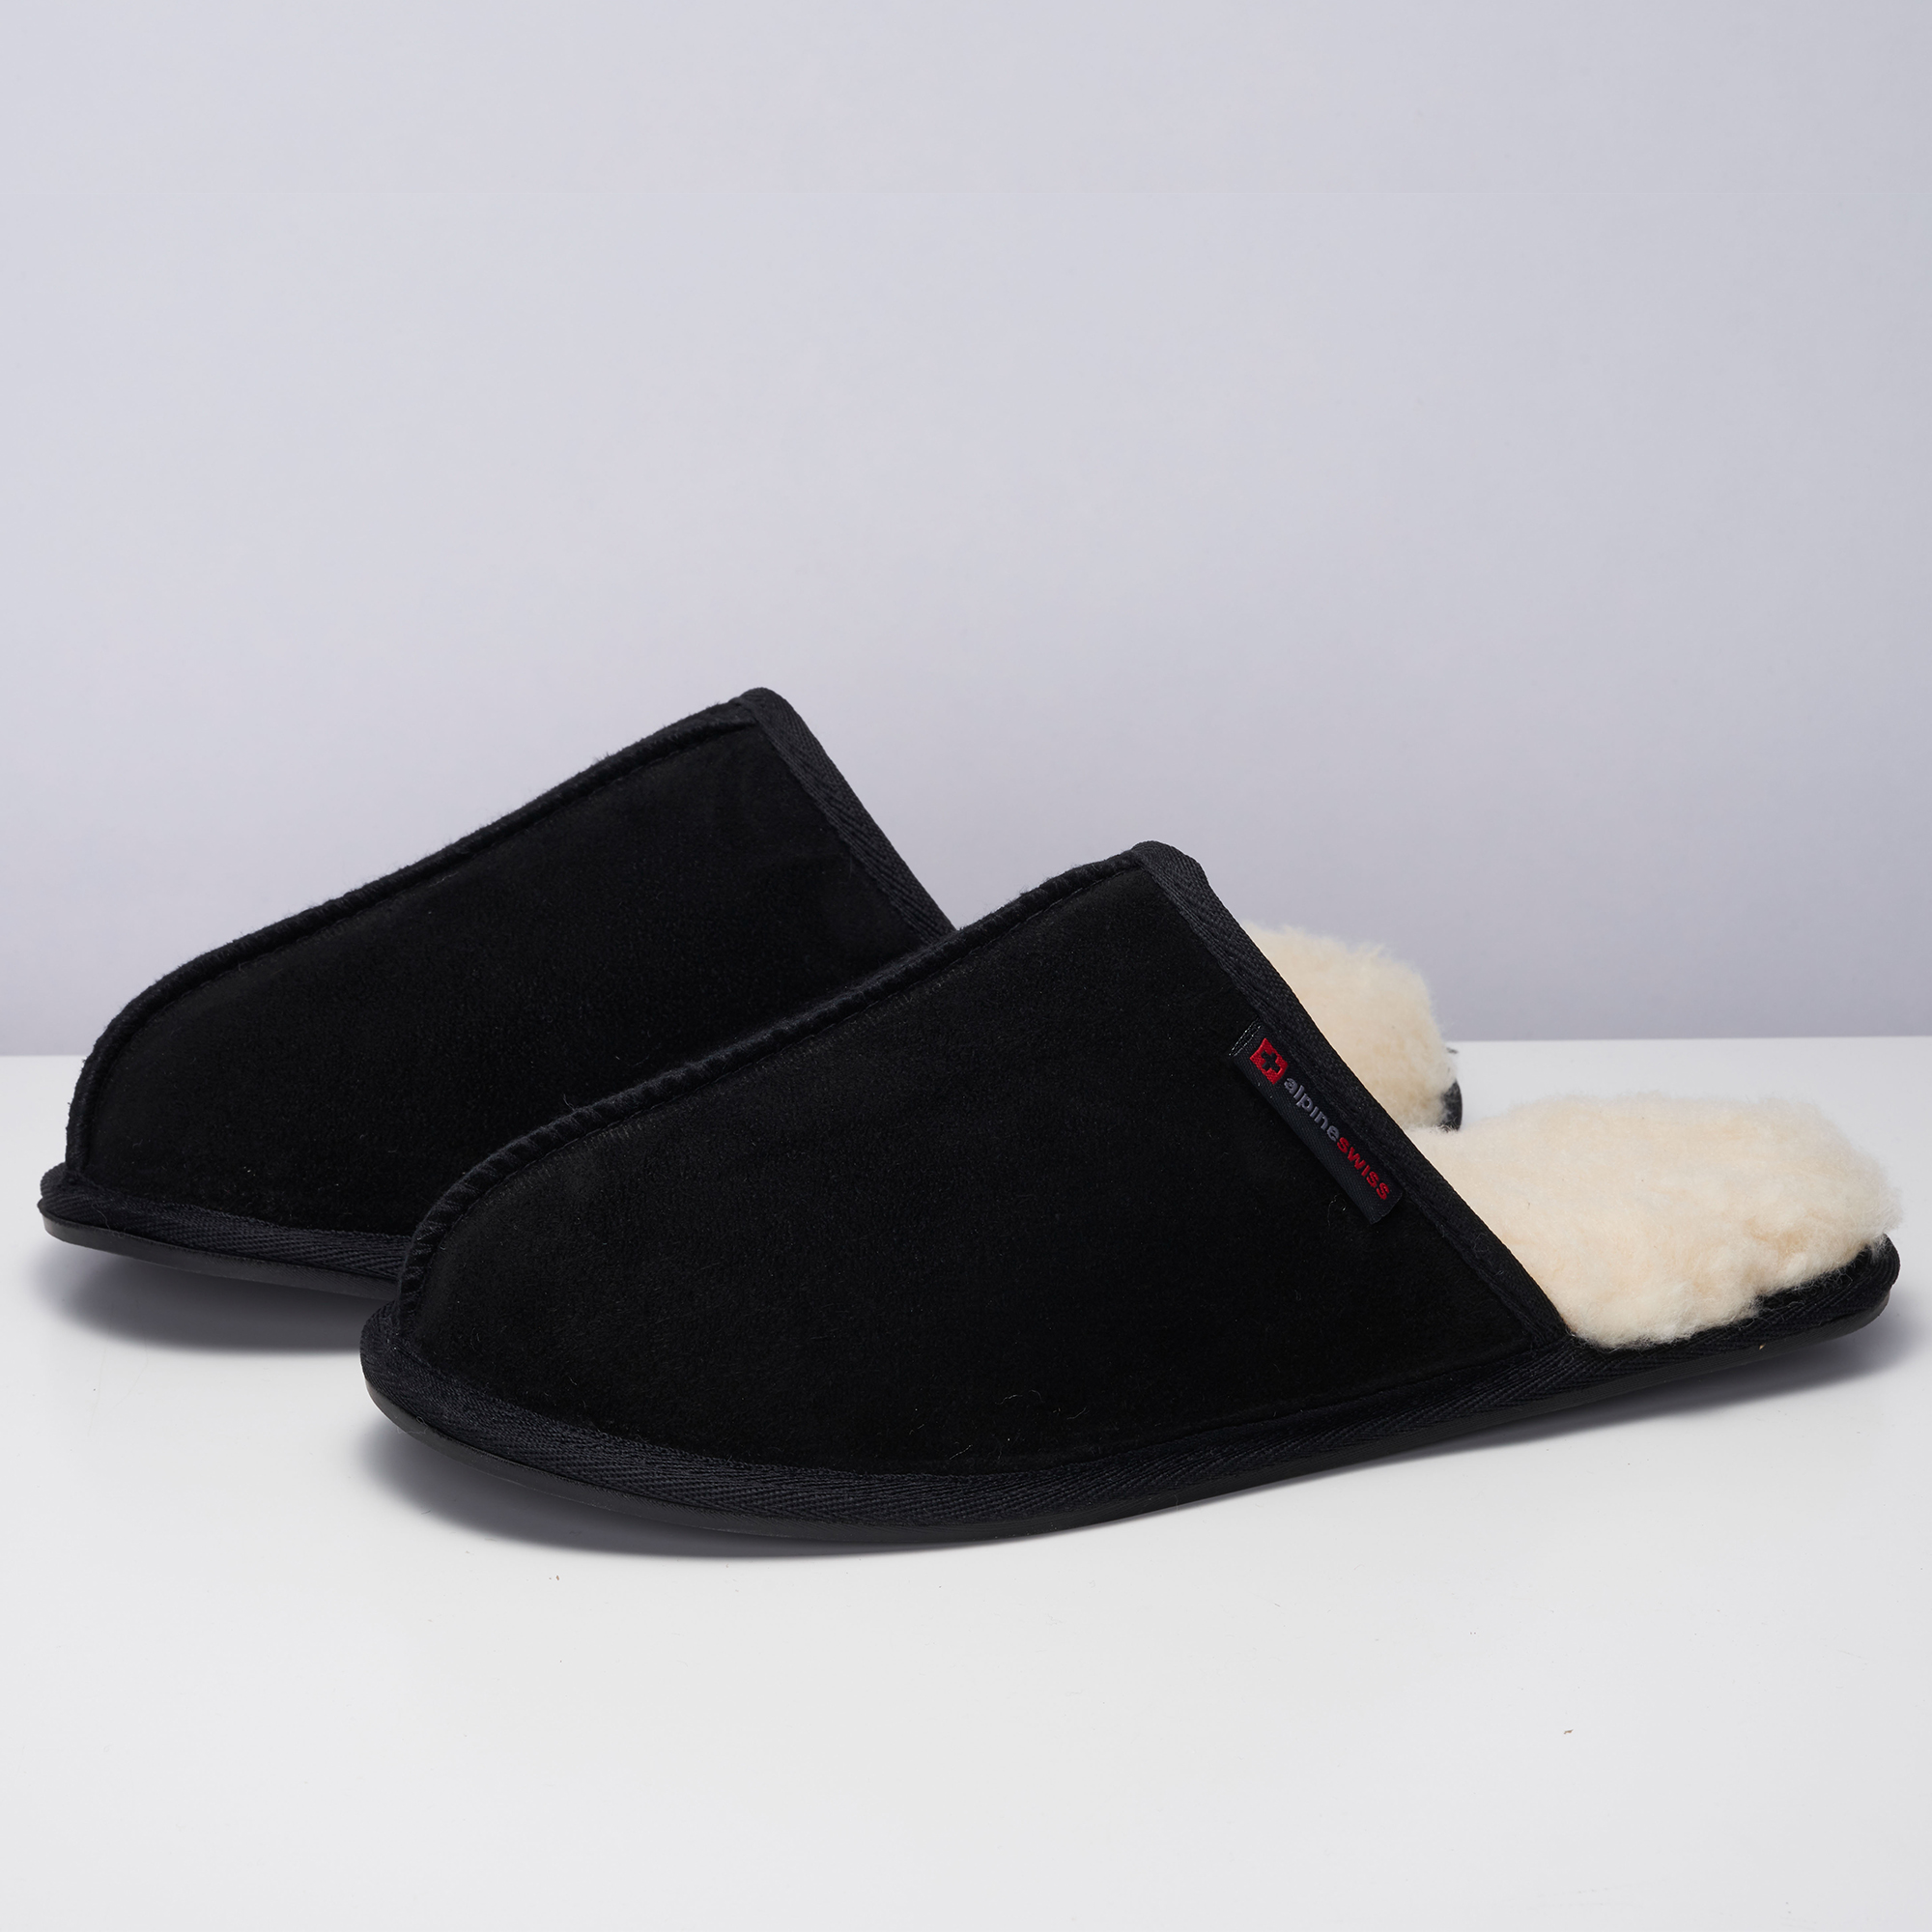 Alpine-Swiss-Mens-Suede-Memory-Foam-Scuff-Slippers-Comfort-Slip-On-House-Shoes thumbnail 17